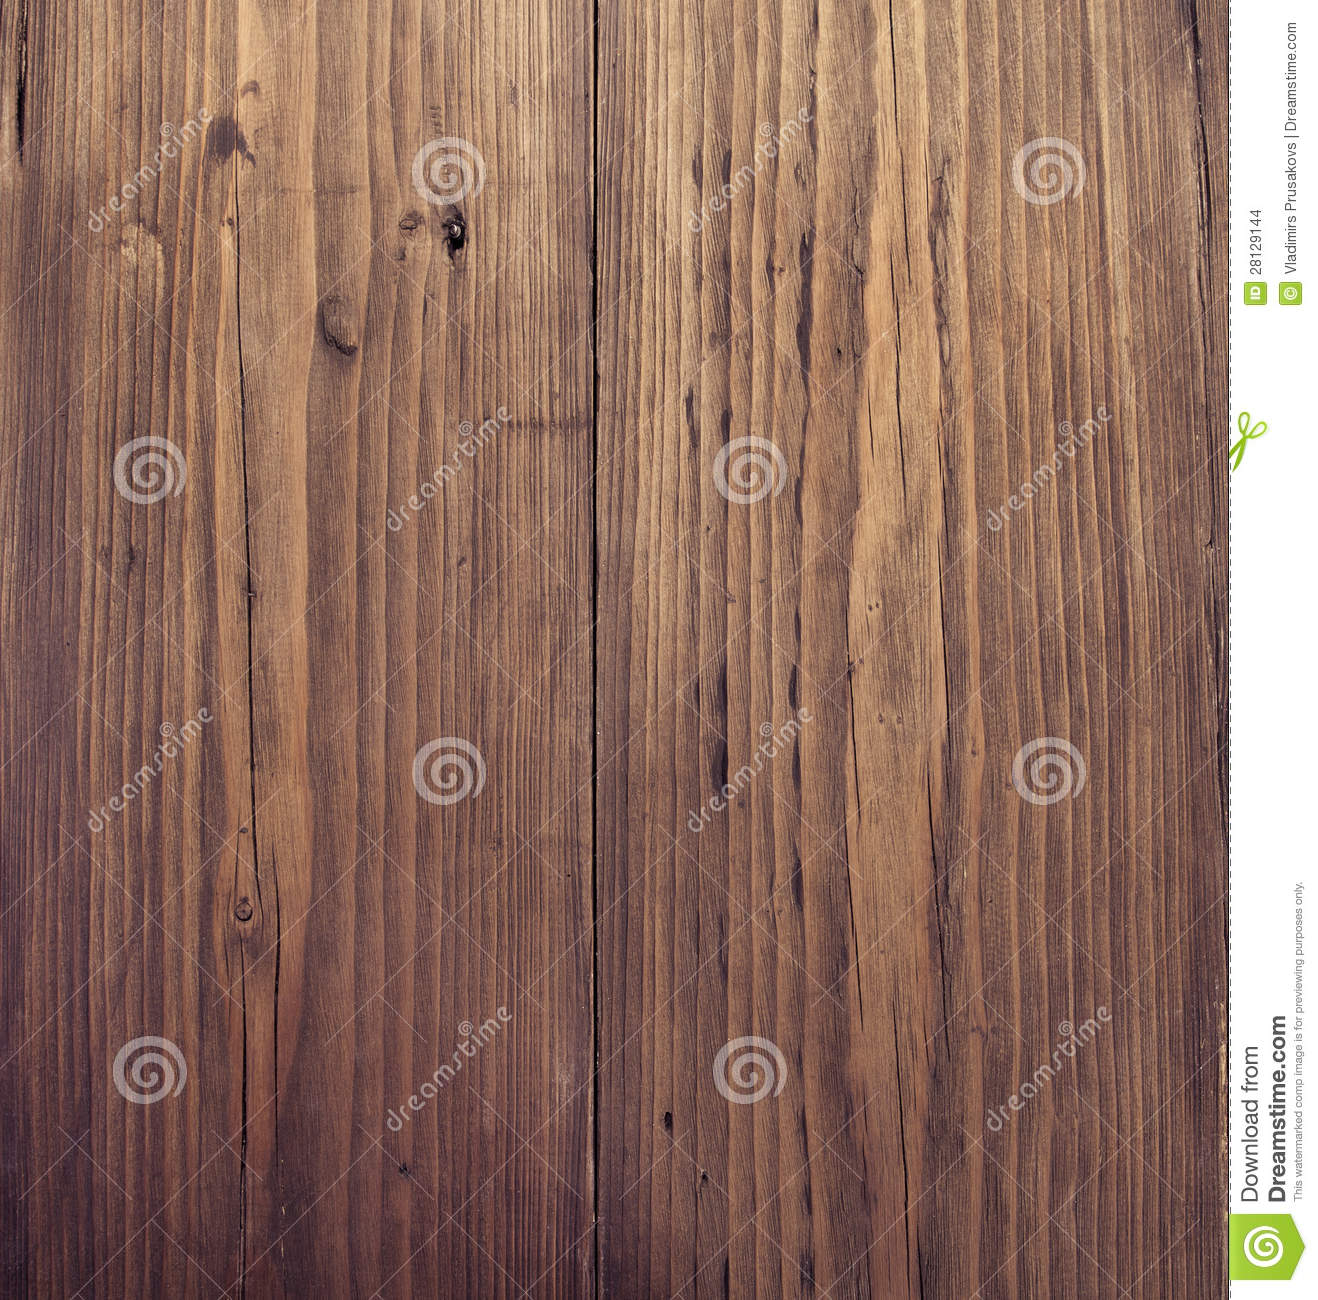 Wooden background. Grunge grain wood board texture